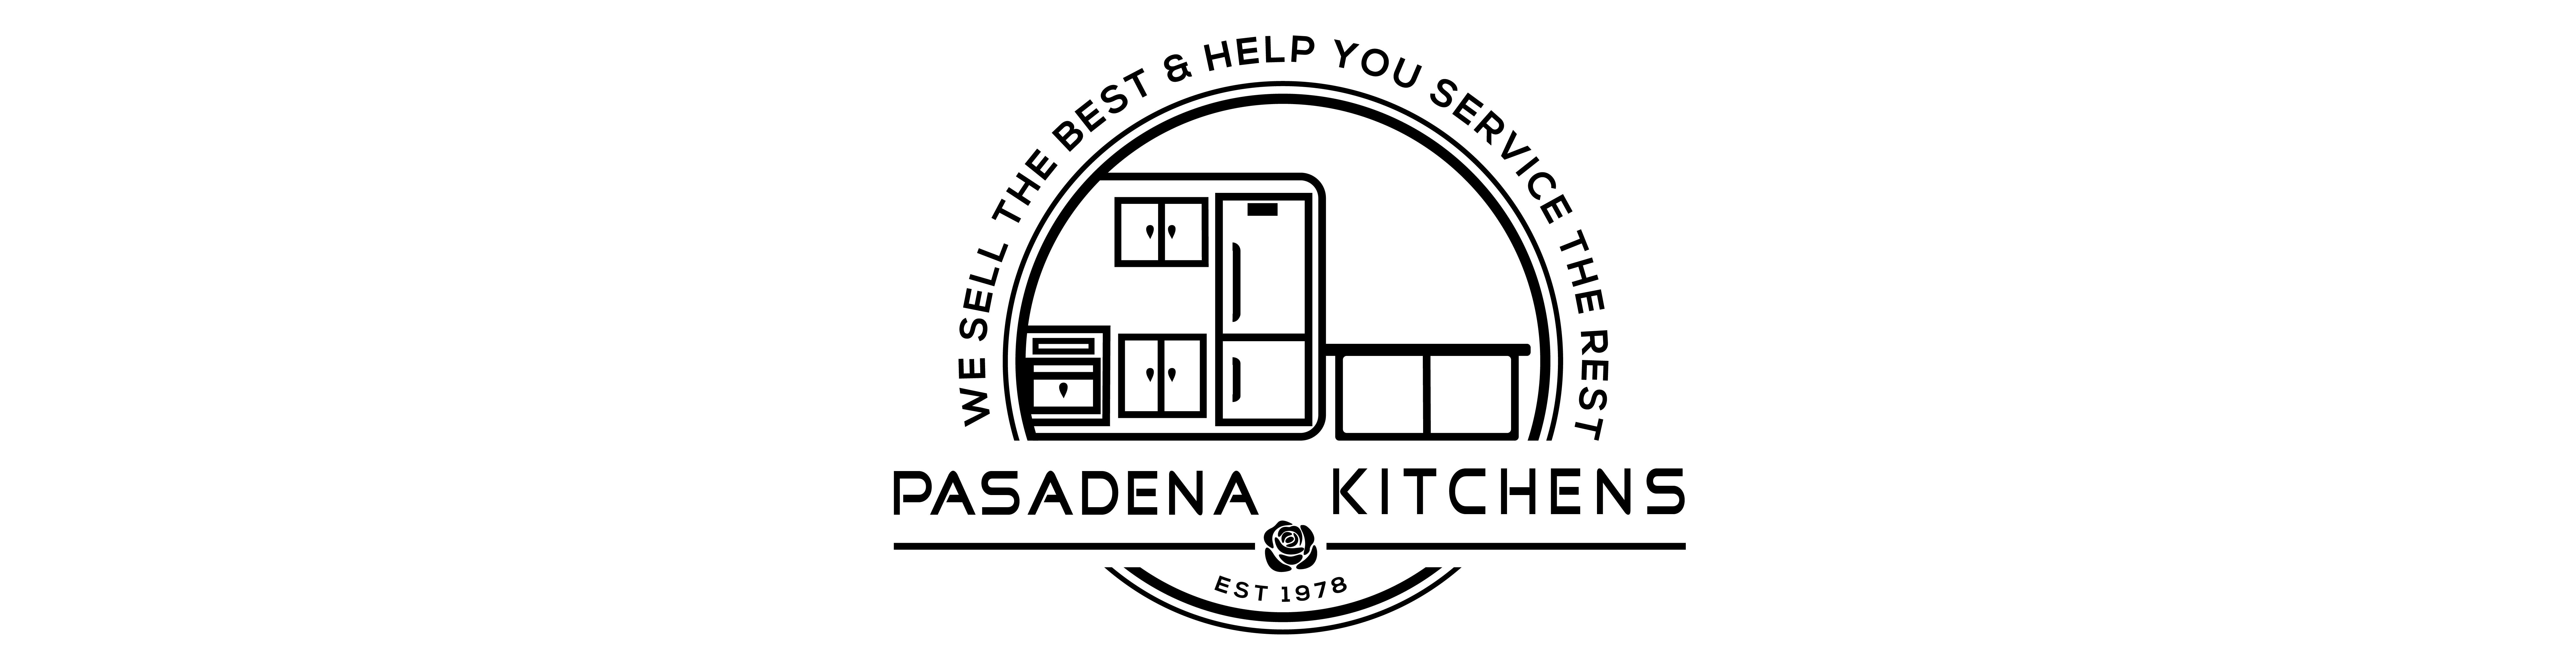 """Pasadena Kitchens, Inc. """"We sell the best & help you service the rest!"""" Logo"""